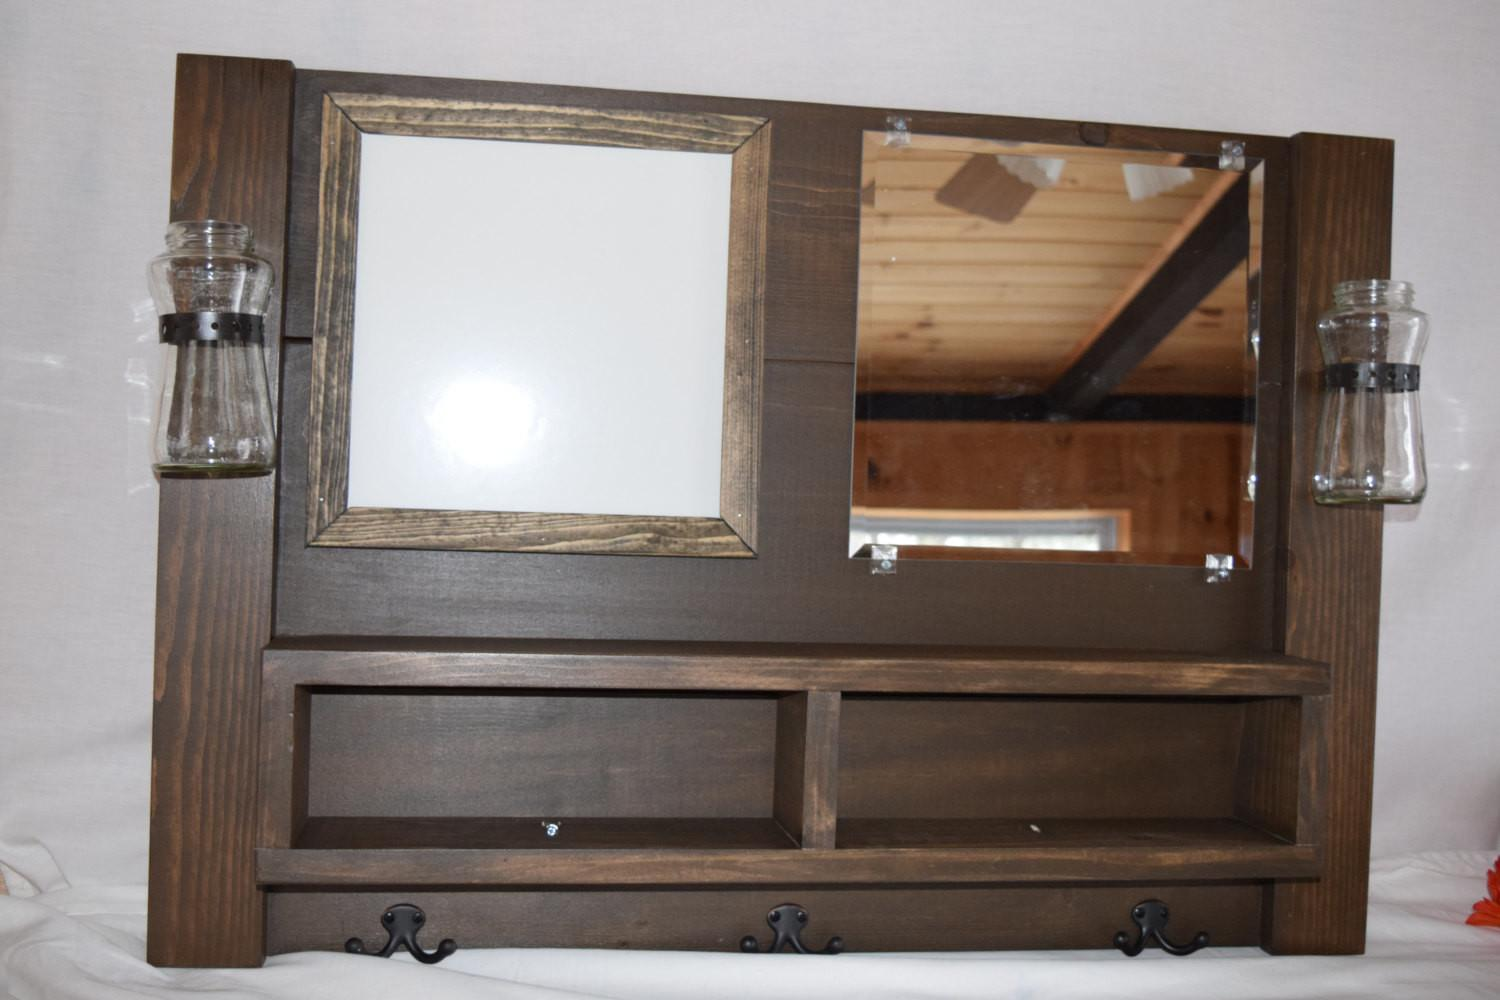 Diy Entryway Mirror Hooks Shelf Stabbedinback